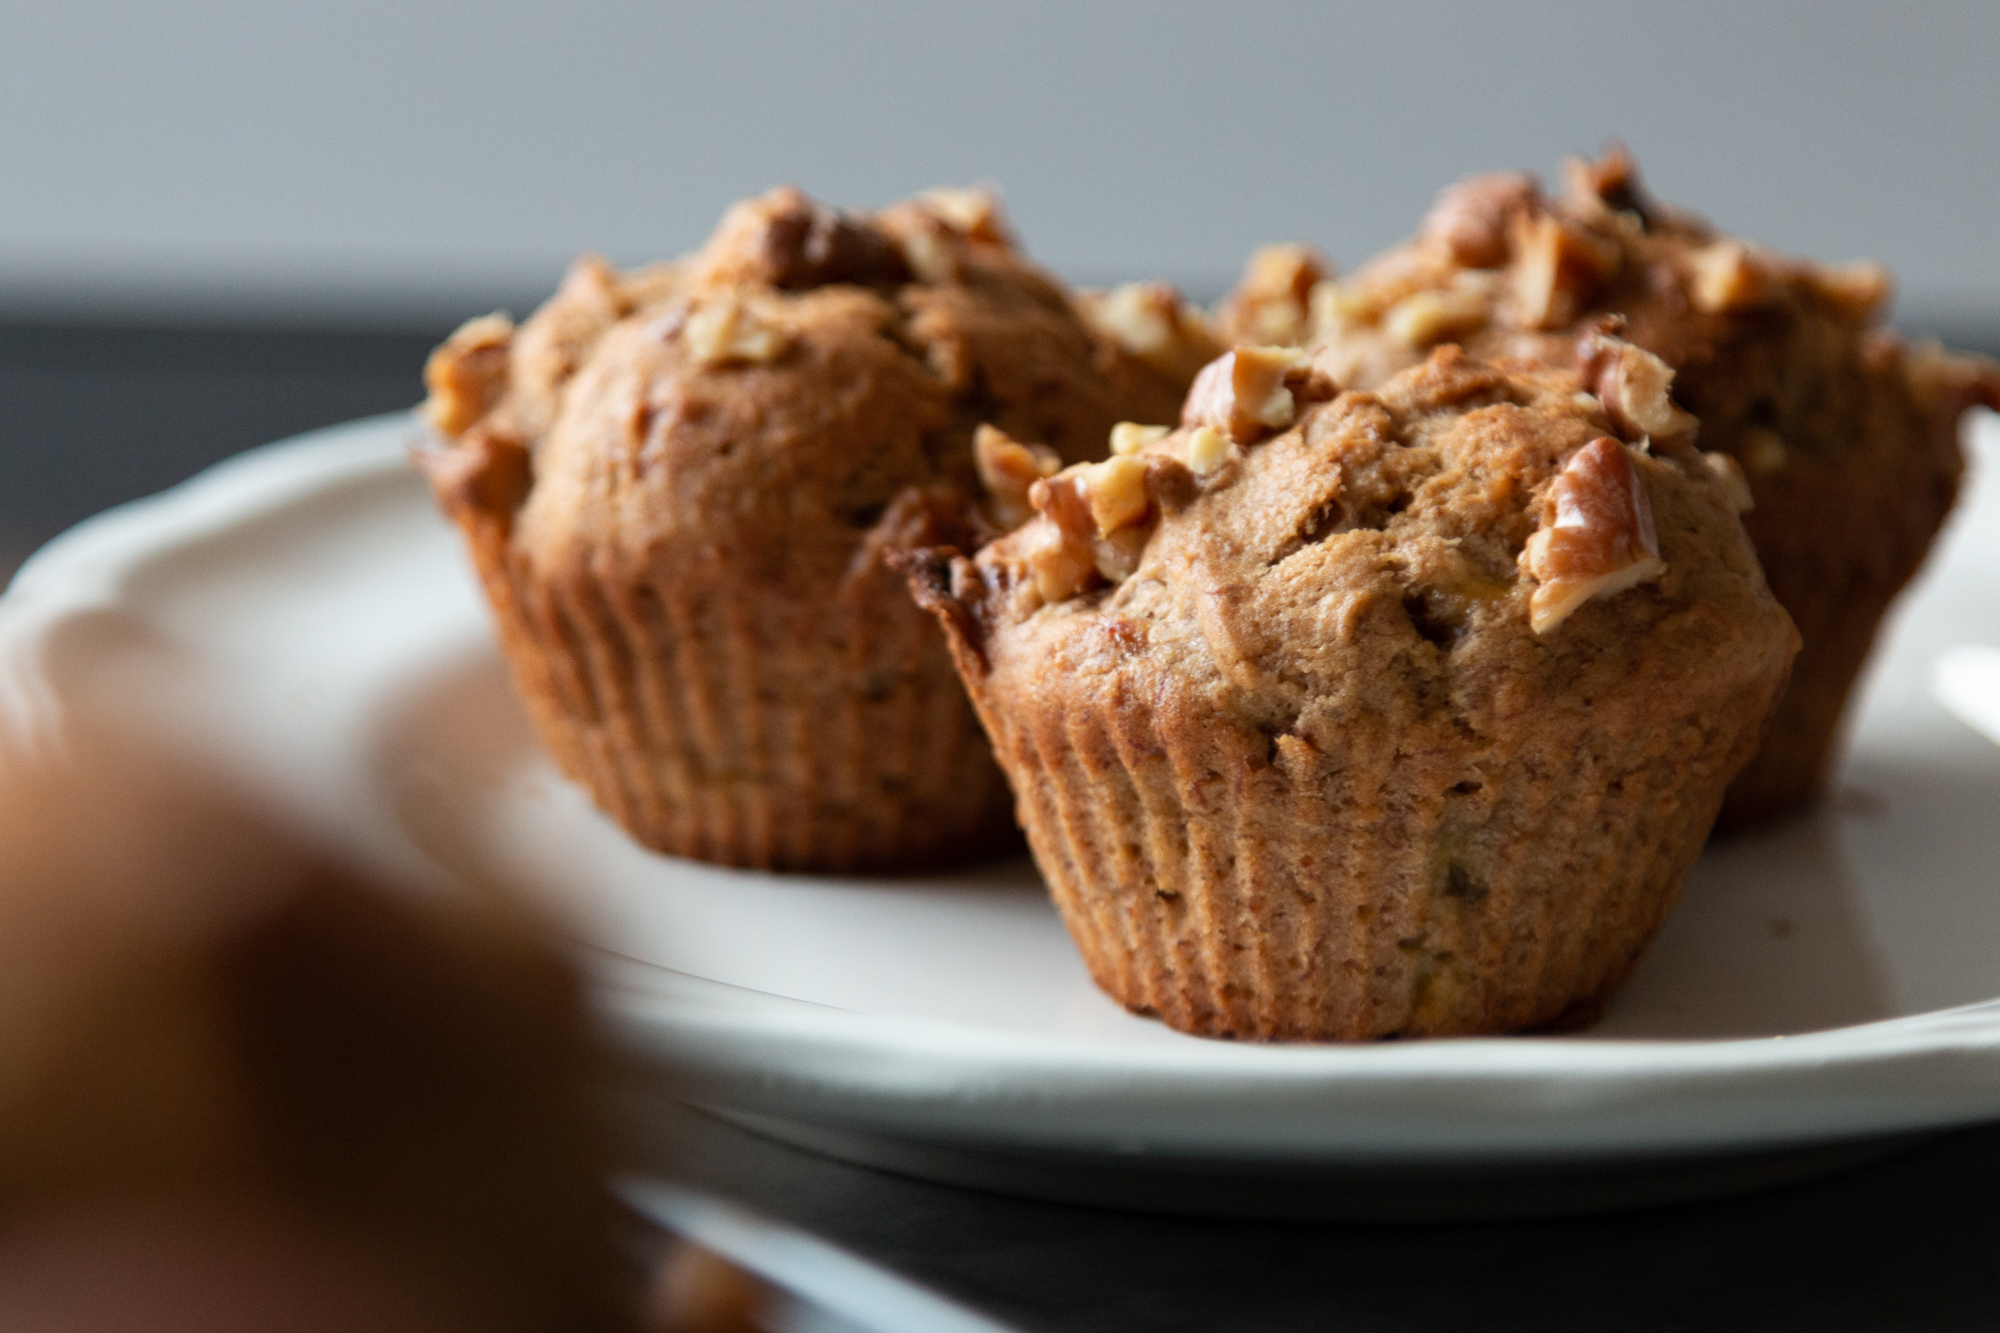 NV_Vegan Banana Nut Muffins.jpg